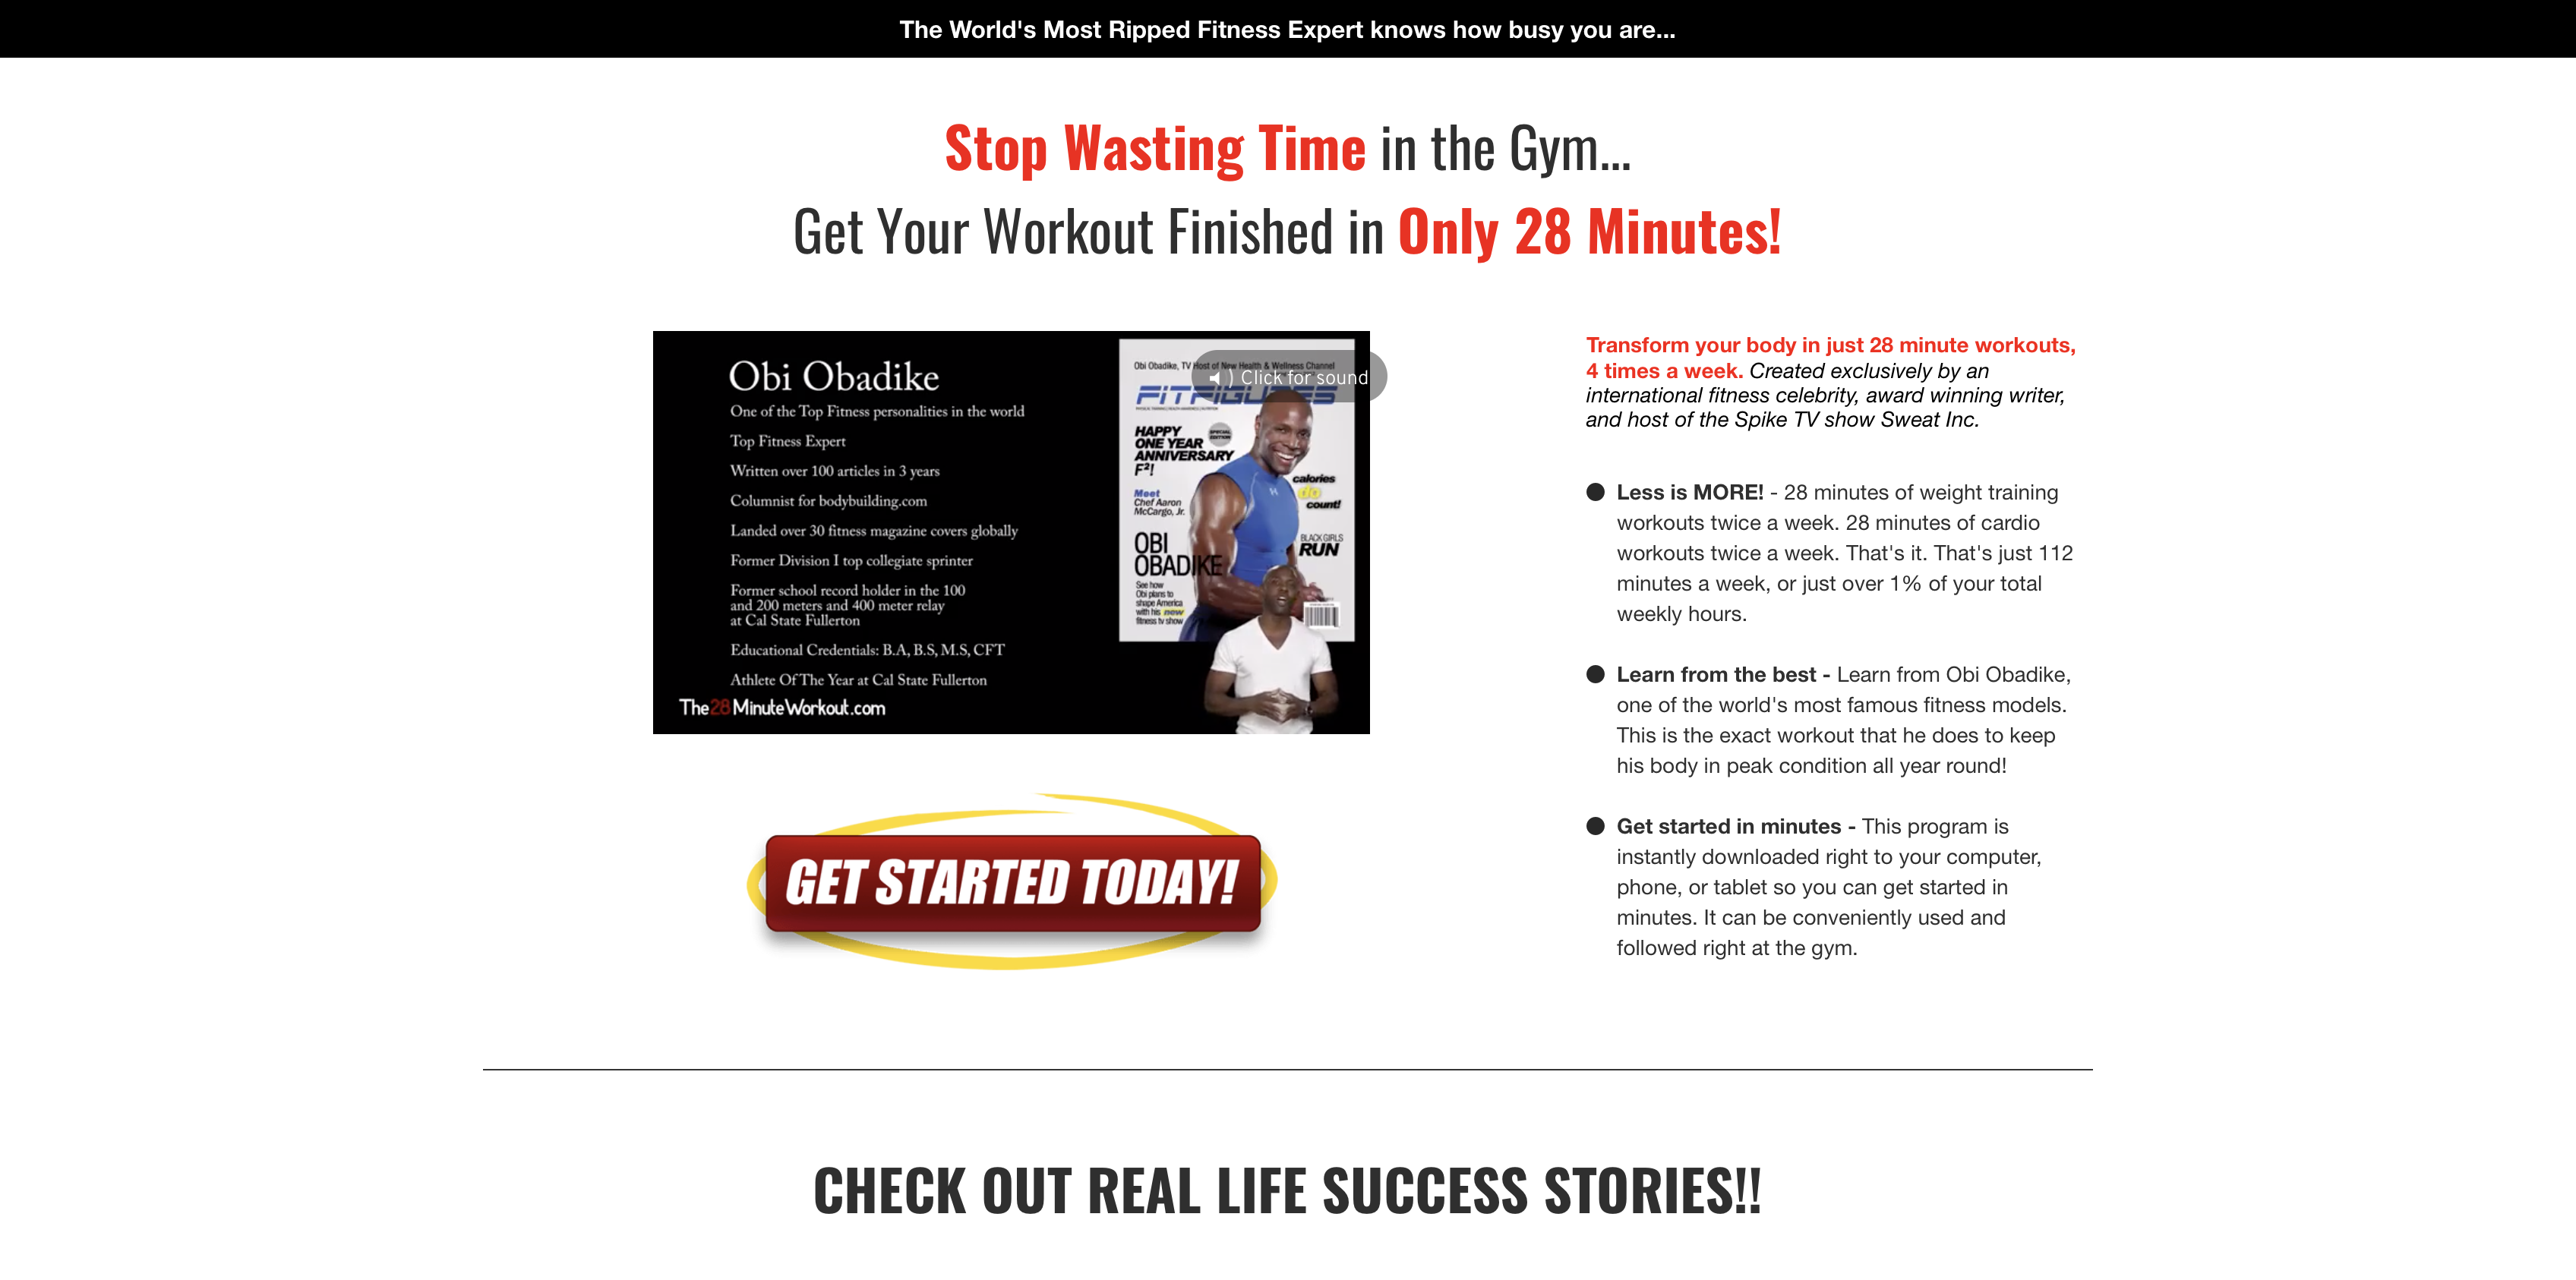 The28MinuteWorkout.com